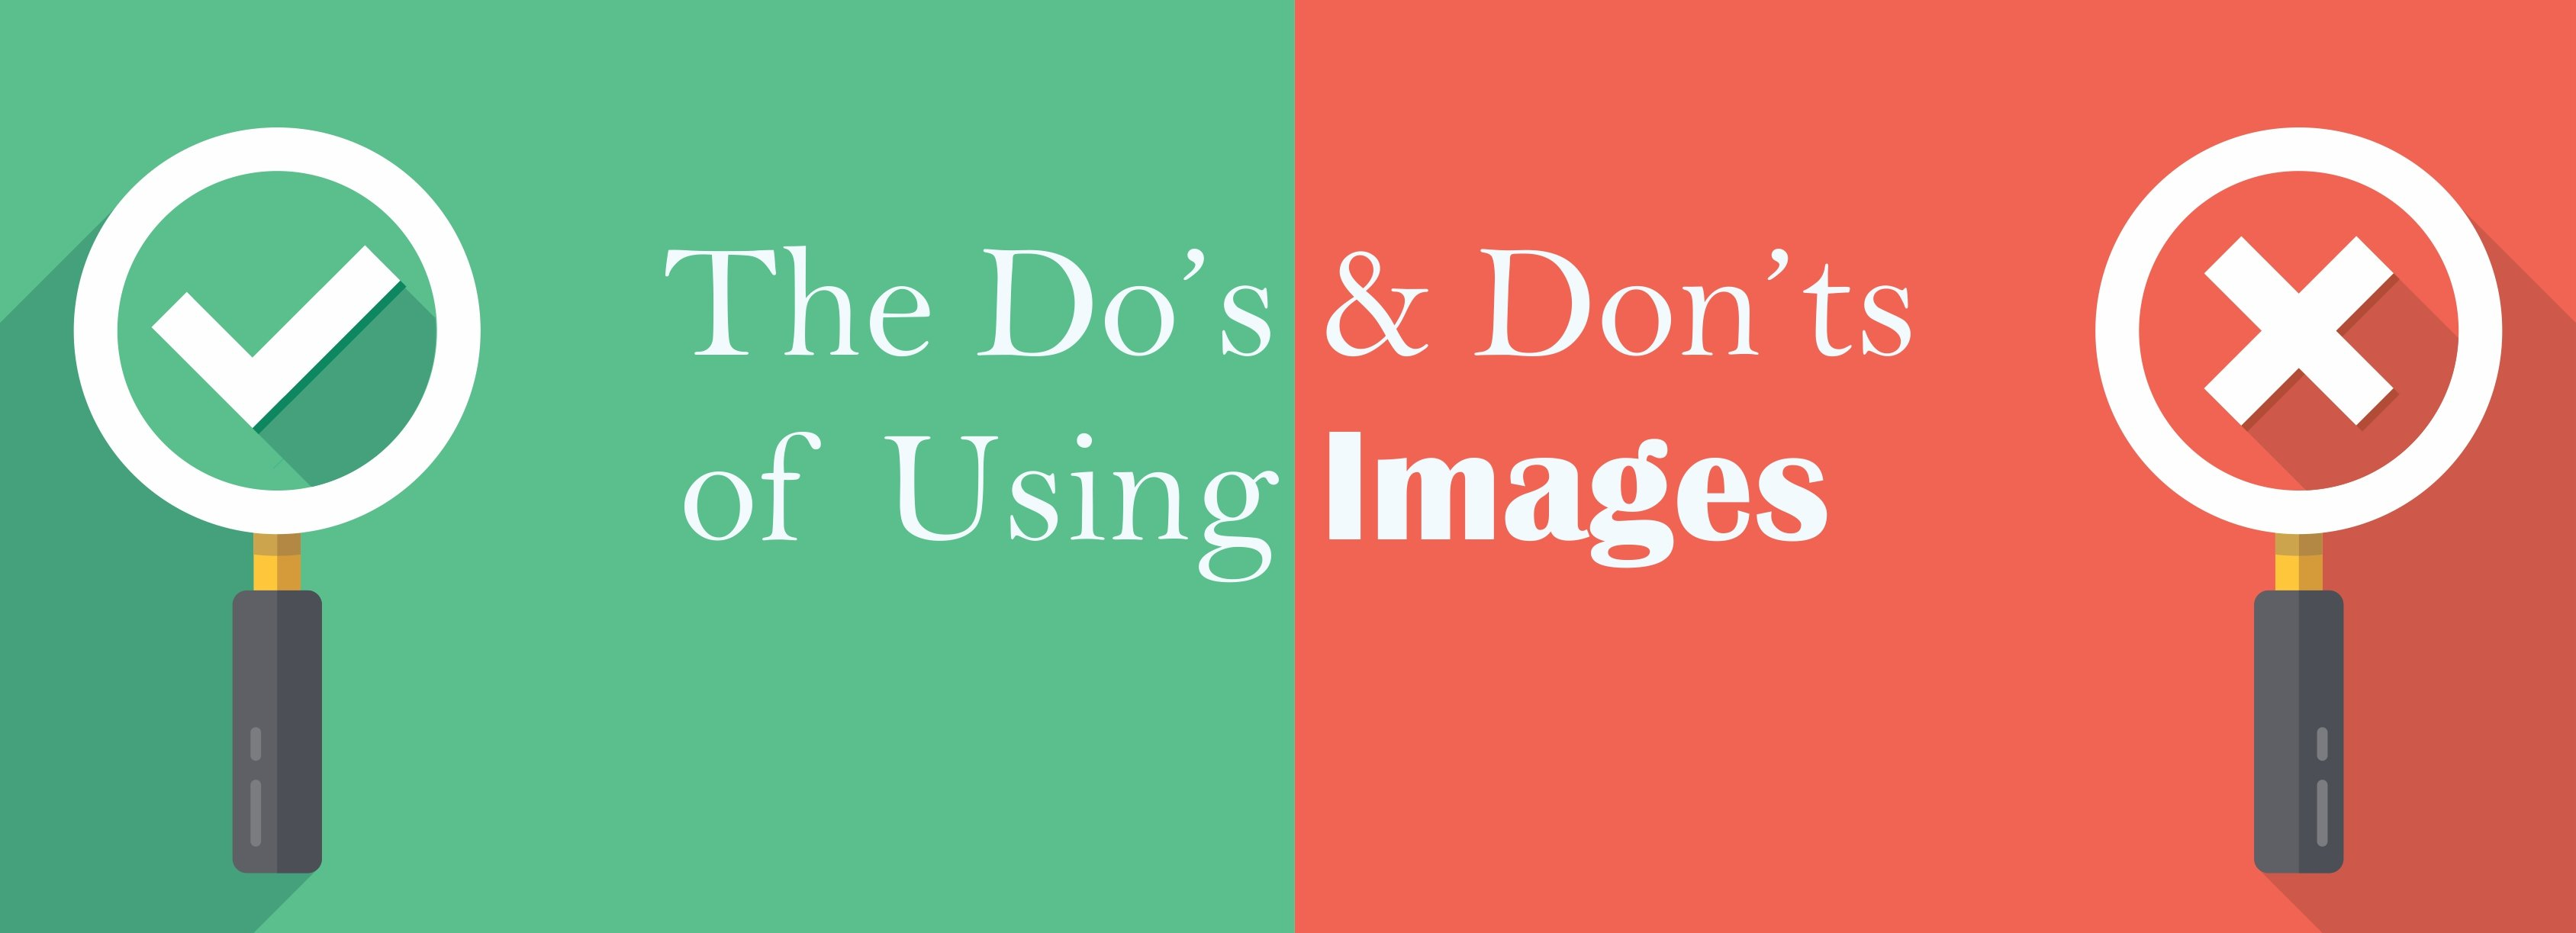 8 Key Dos and Don'ts of Using Images in Presentations for 2019 and Beyond